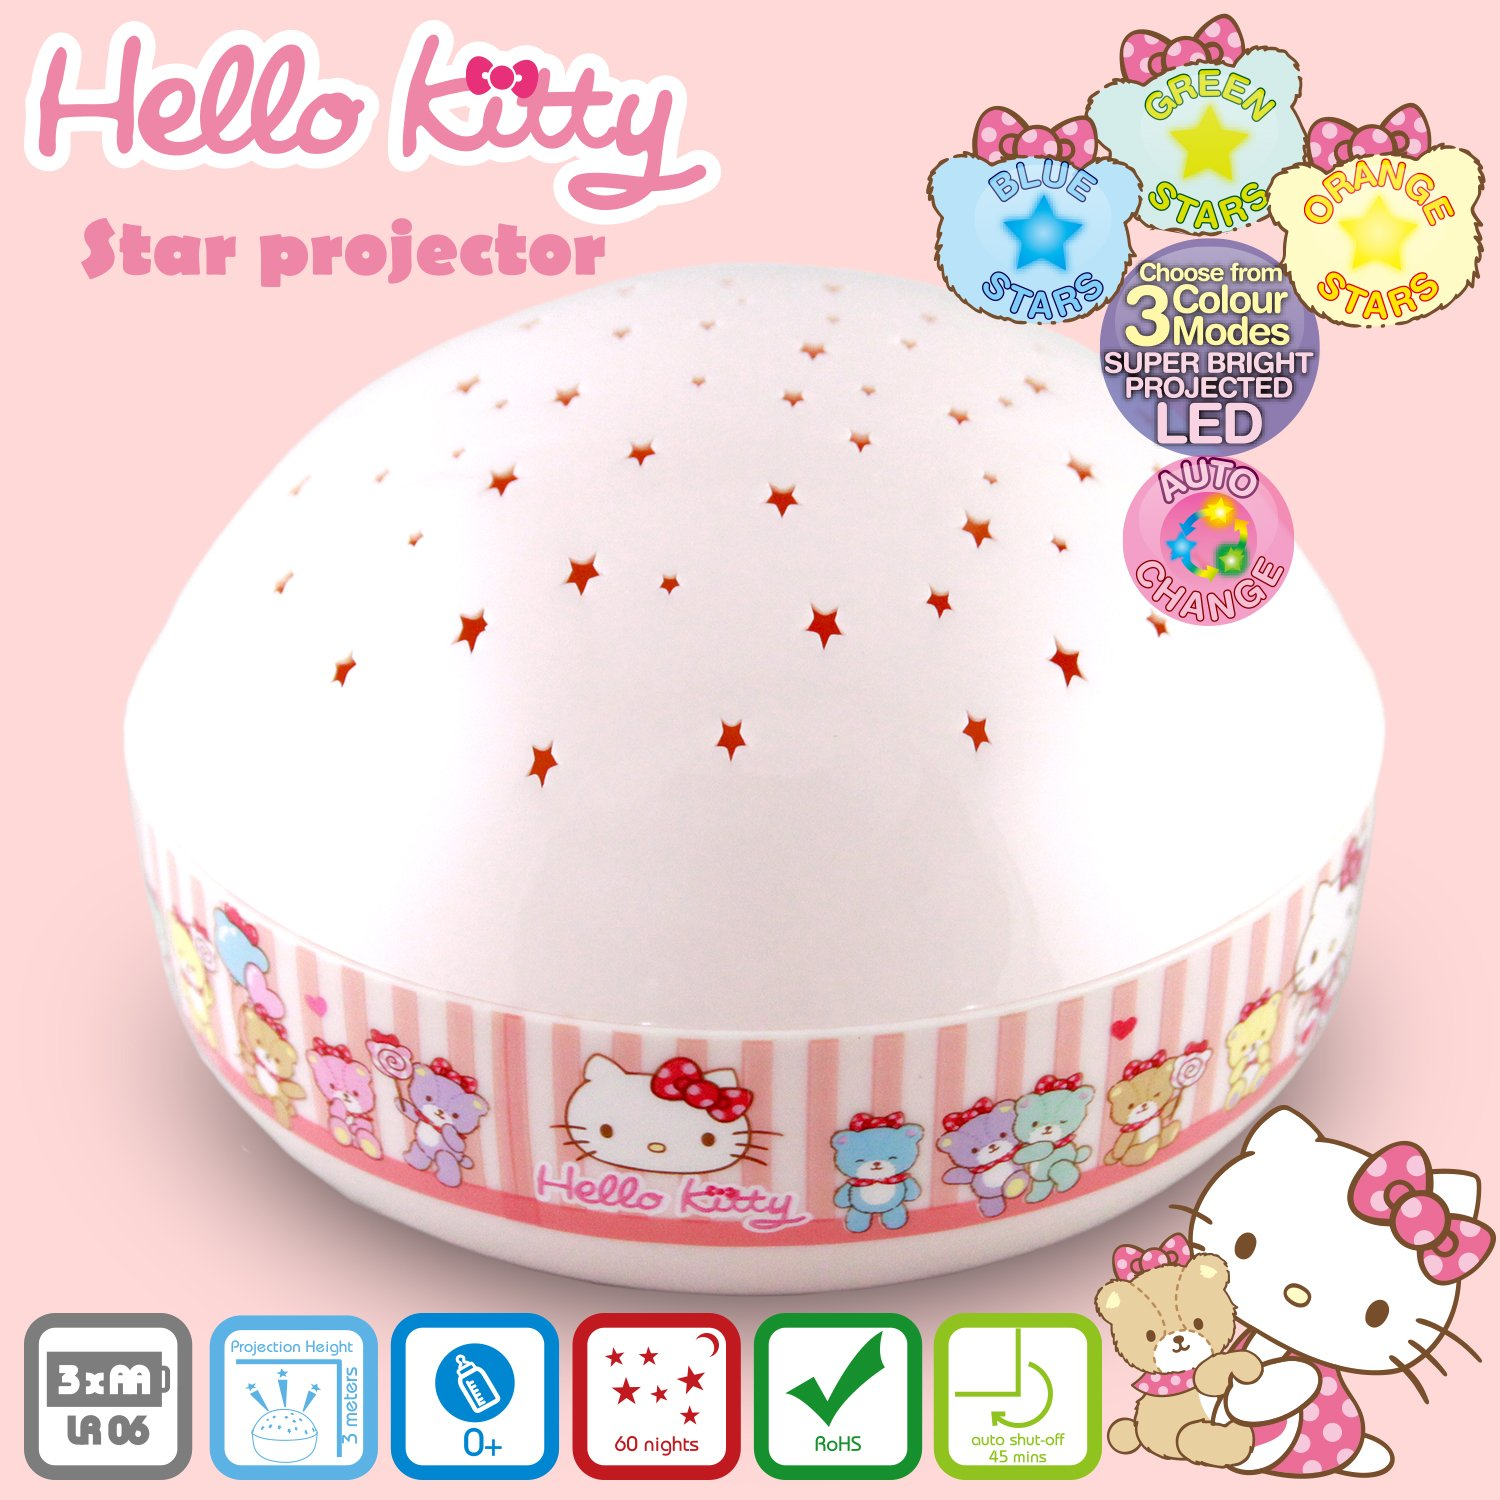 Hello Kitty''Touch Active, Easy Clean'' Twilight Constellation Galaxy Night Light Star Projector by Lumitusi (Hello Kitty)